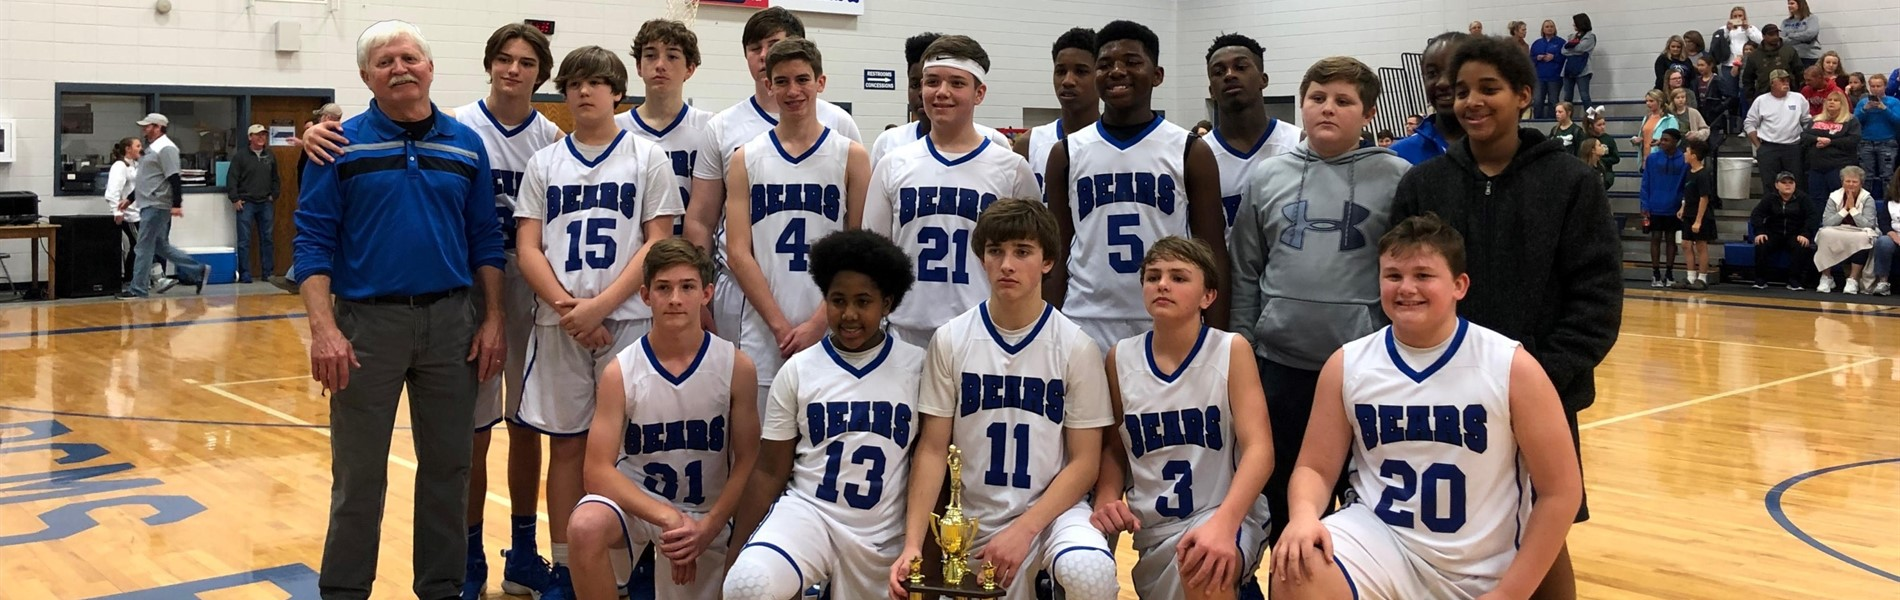 2018-2019 8th Grade Boys Basketball Conference CHAMPS